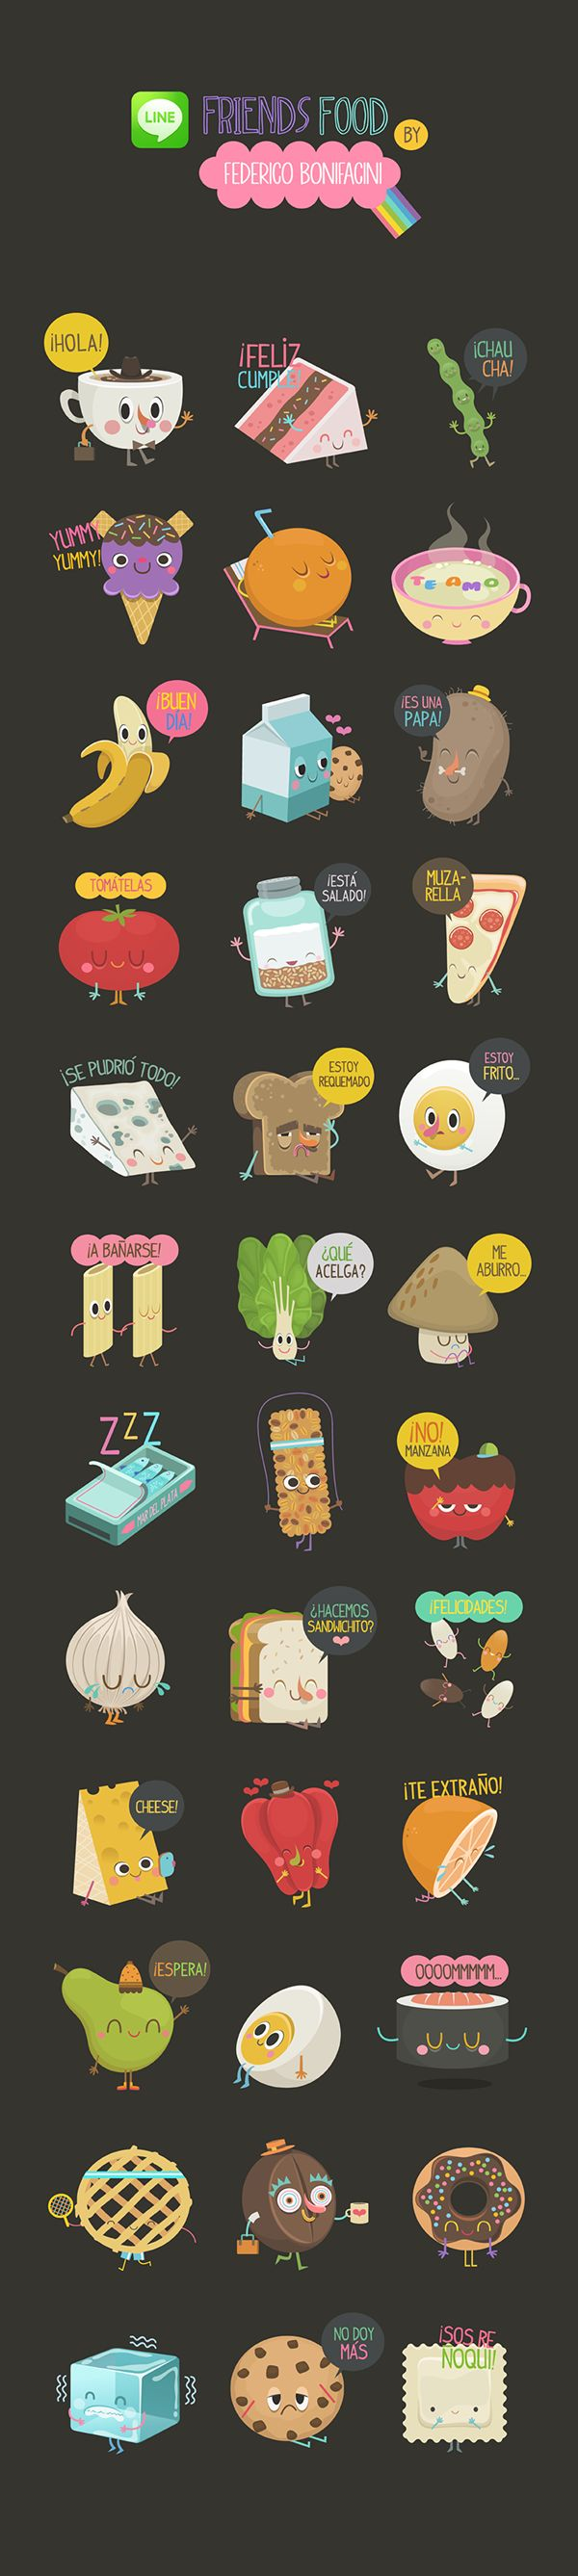 https://www.behance.net/gallery/22587311/FRIENDS-FOOD-Line-Stickers